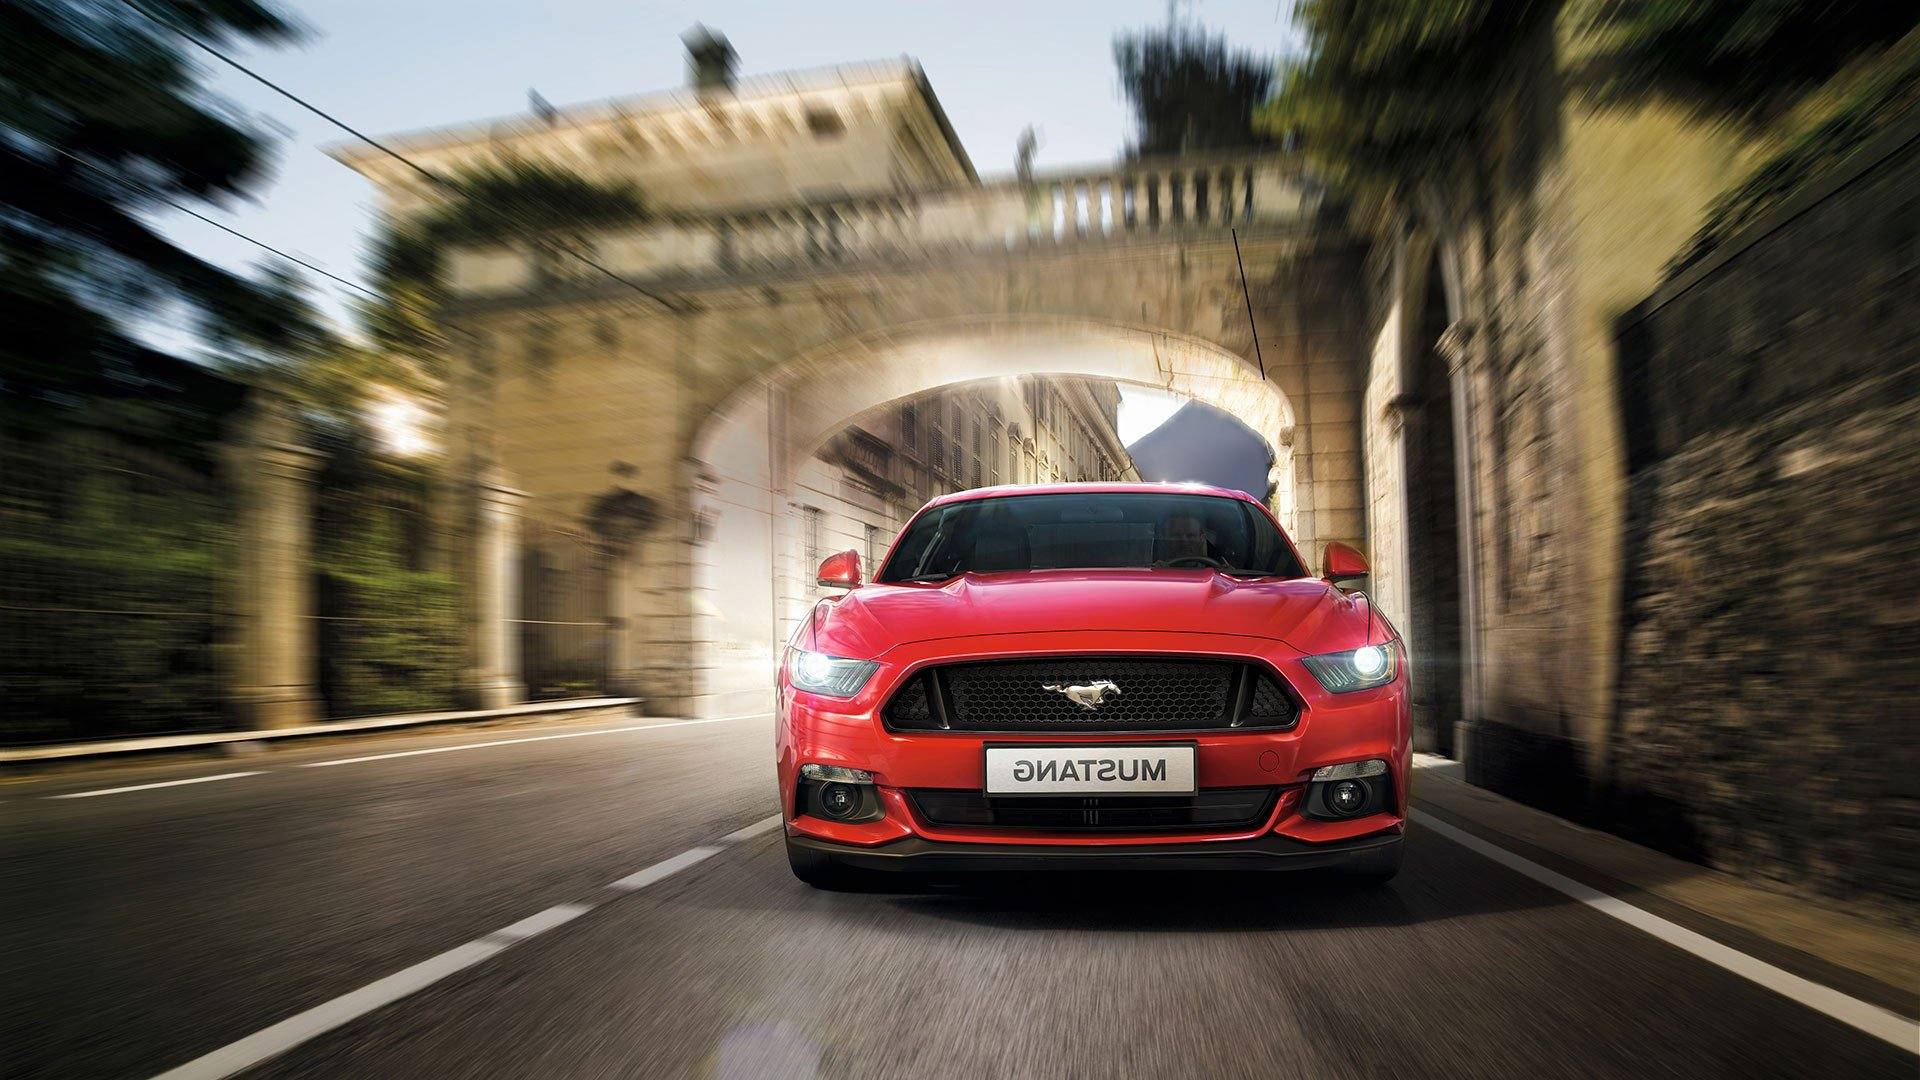 1366x768 Ford Mustang 2017 1366x768 Resolution Hd 4k Wallpapers